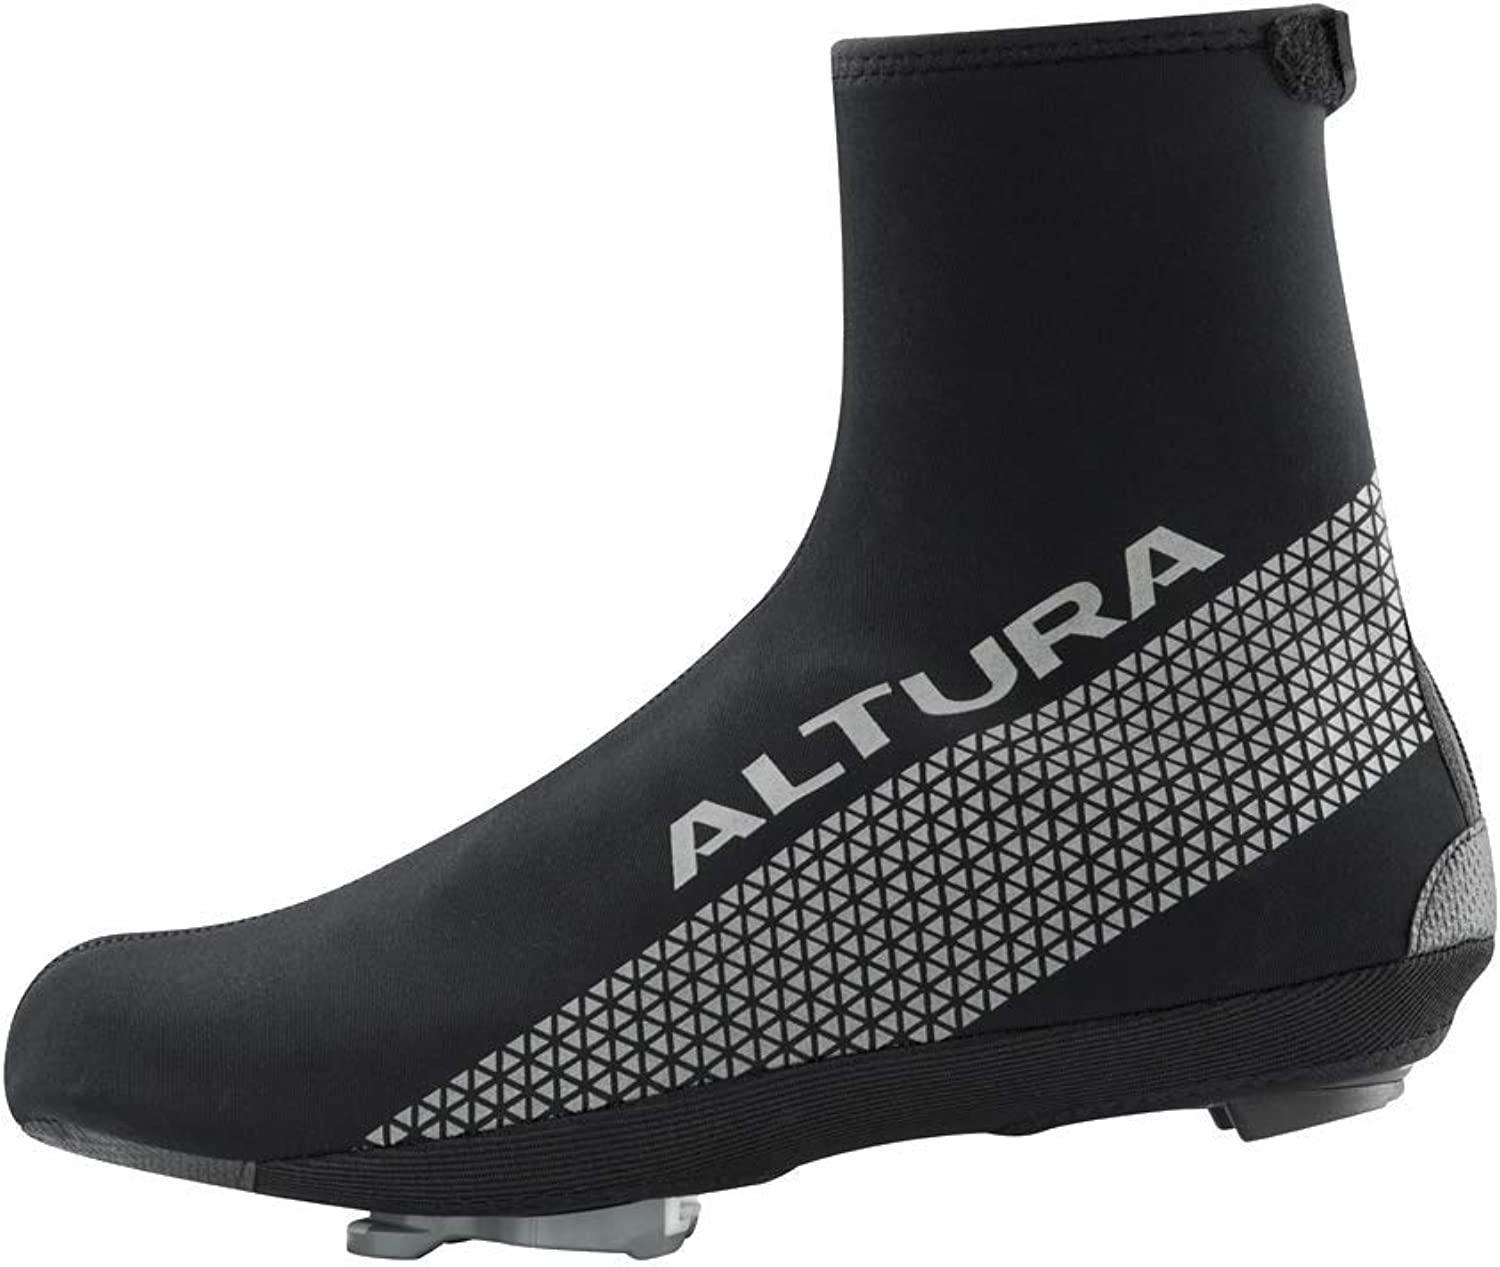 Altura Black 2018 Thermostretch 3 Cycling Overshoe